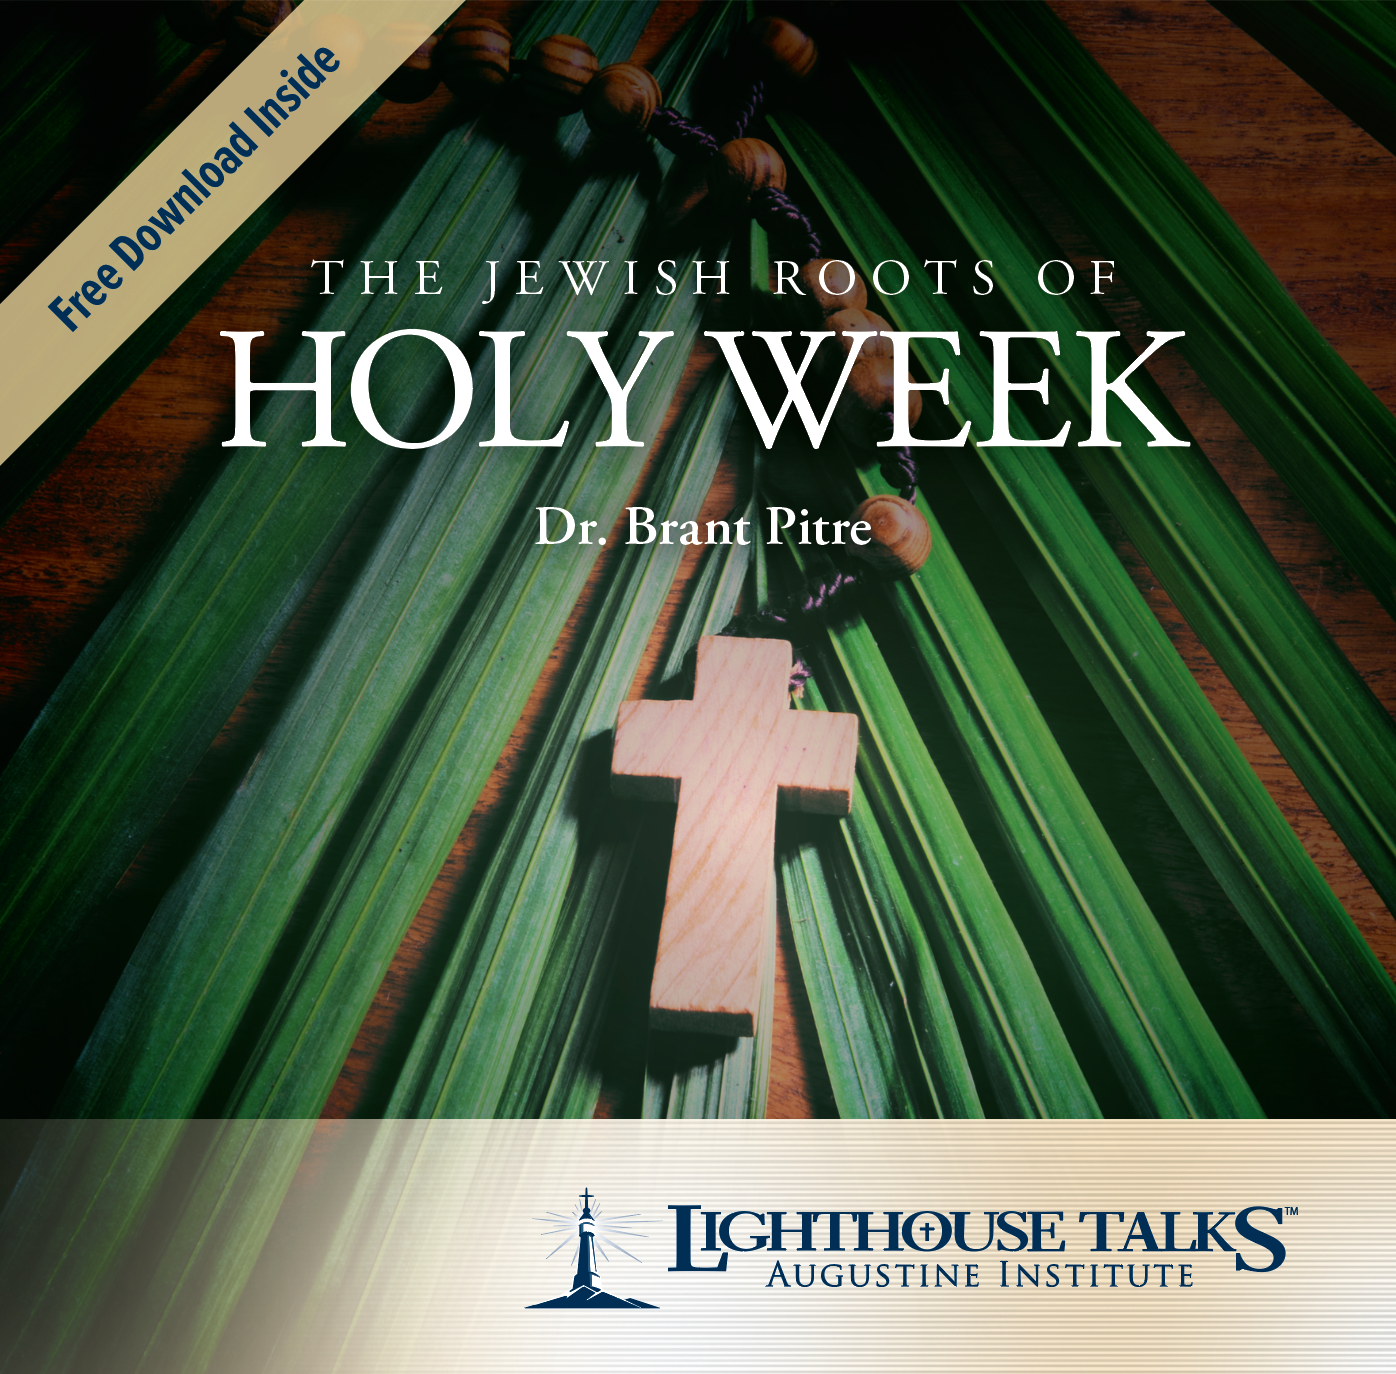 The Jewish Roots of Holy Week - Dr. Brant Pitre